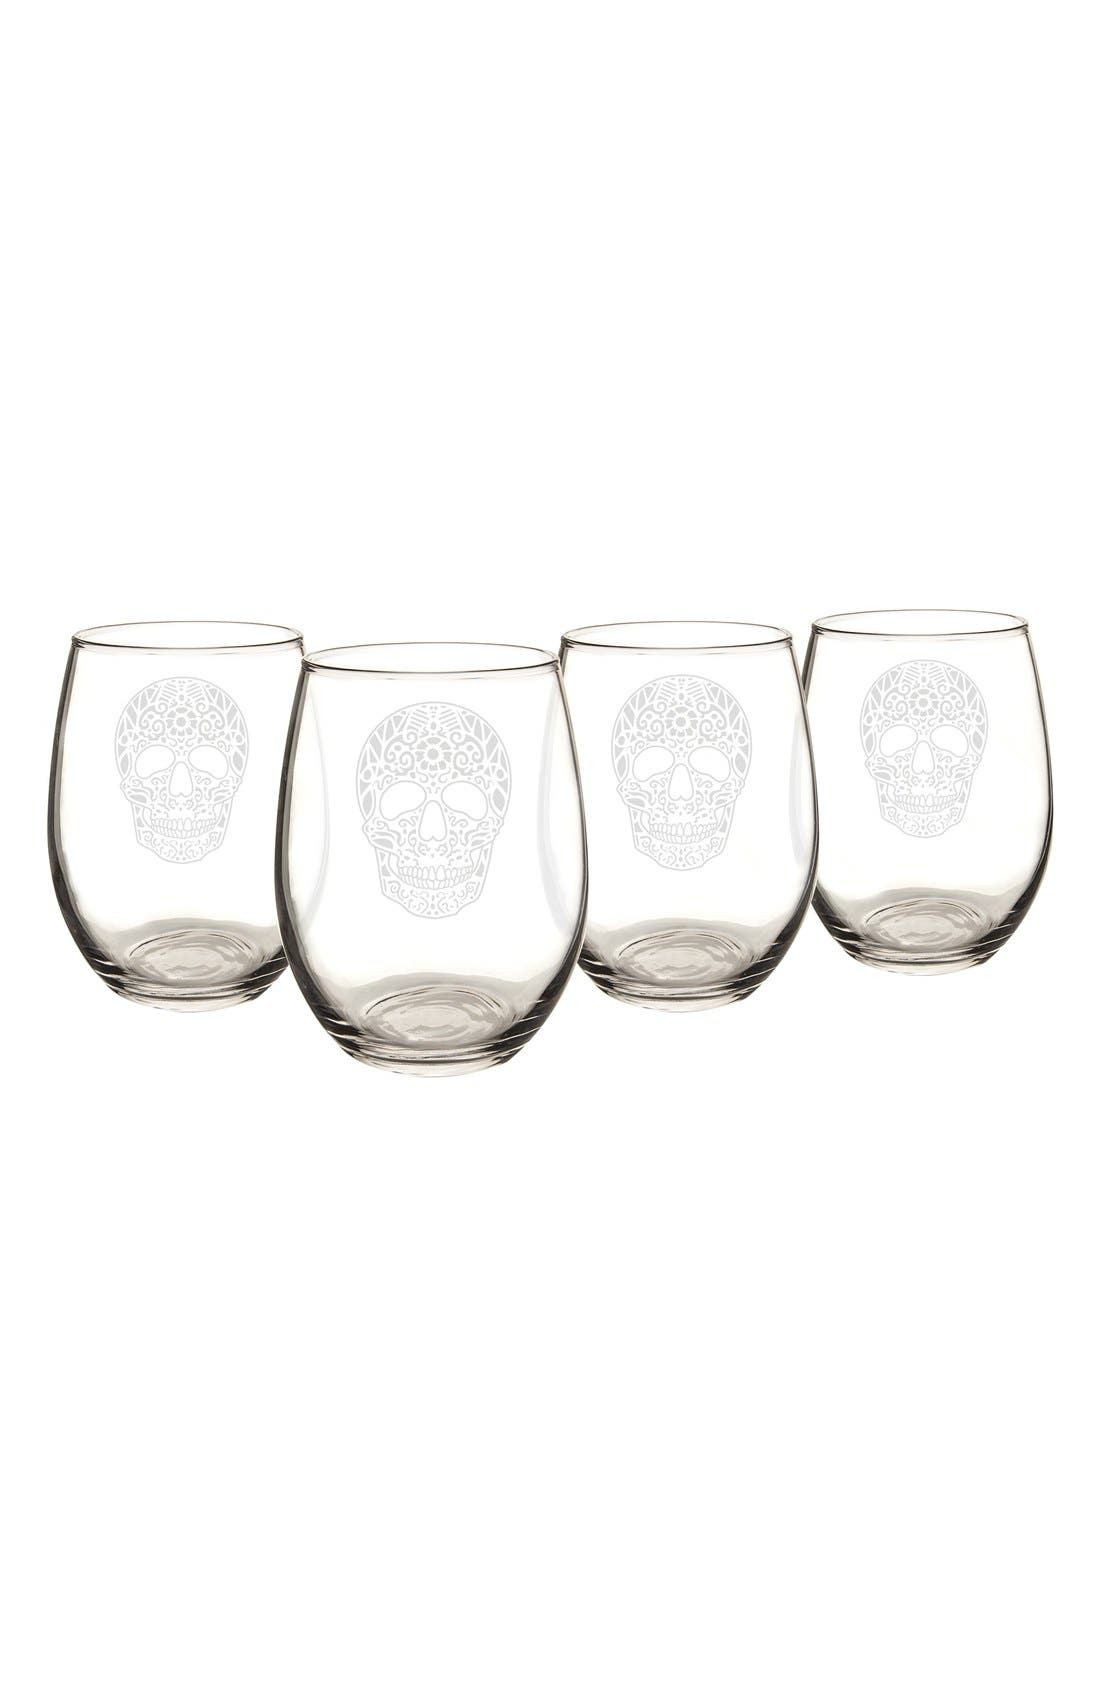 CATHY'S CONCEPTS, Sugar Skulls Set of 4 Stemless Wine Glasses, Main thumbnail 1, color, 100